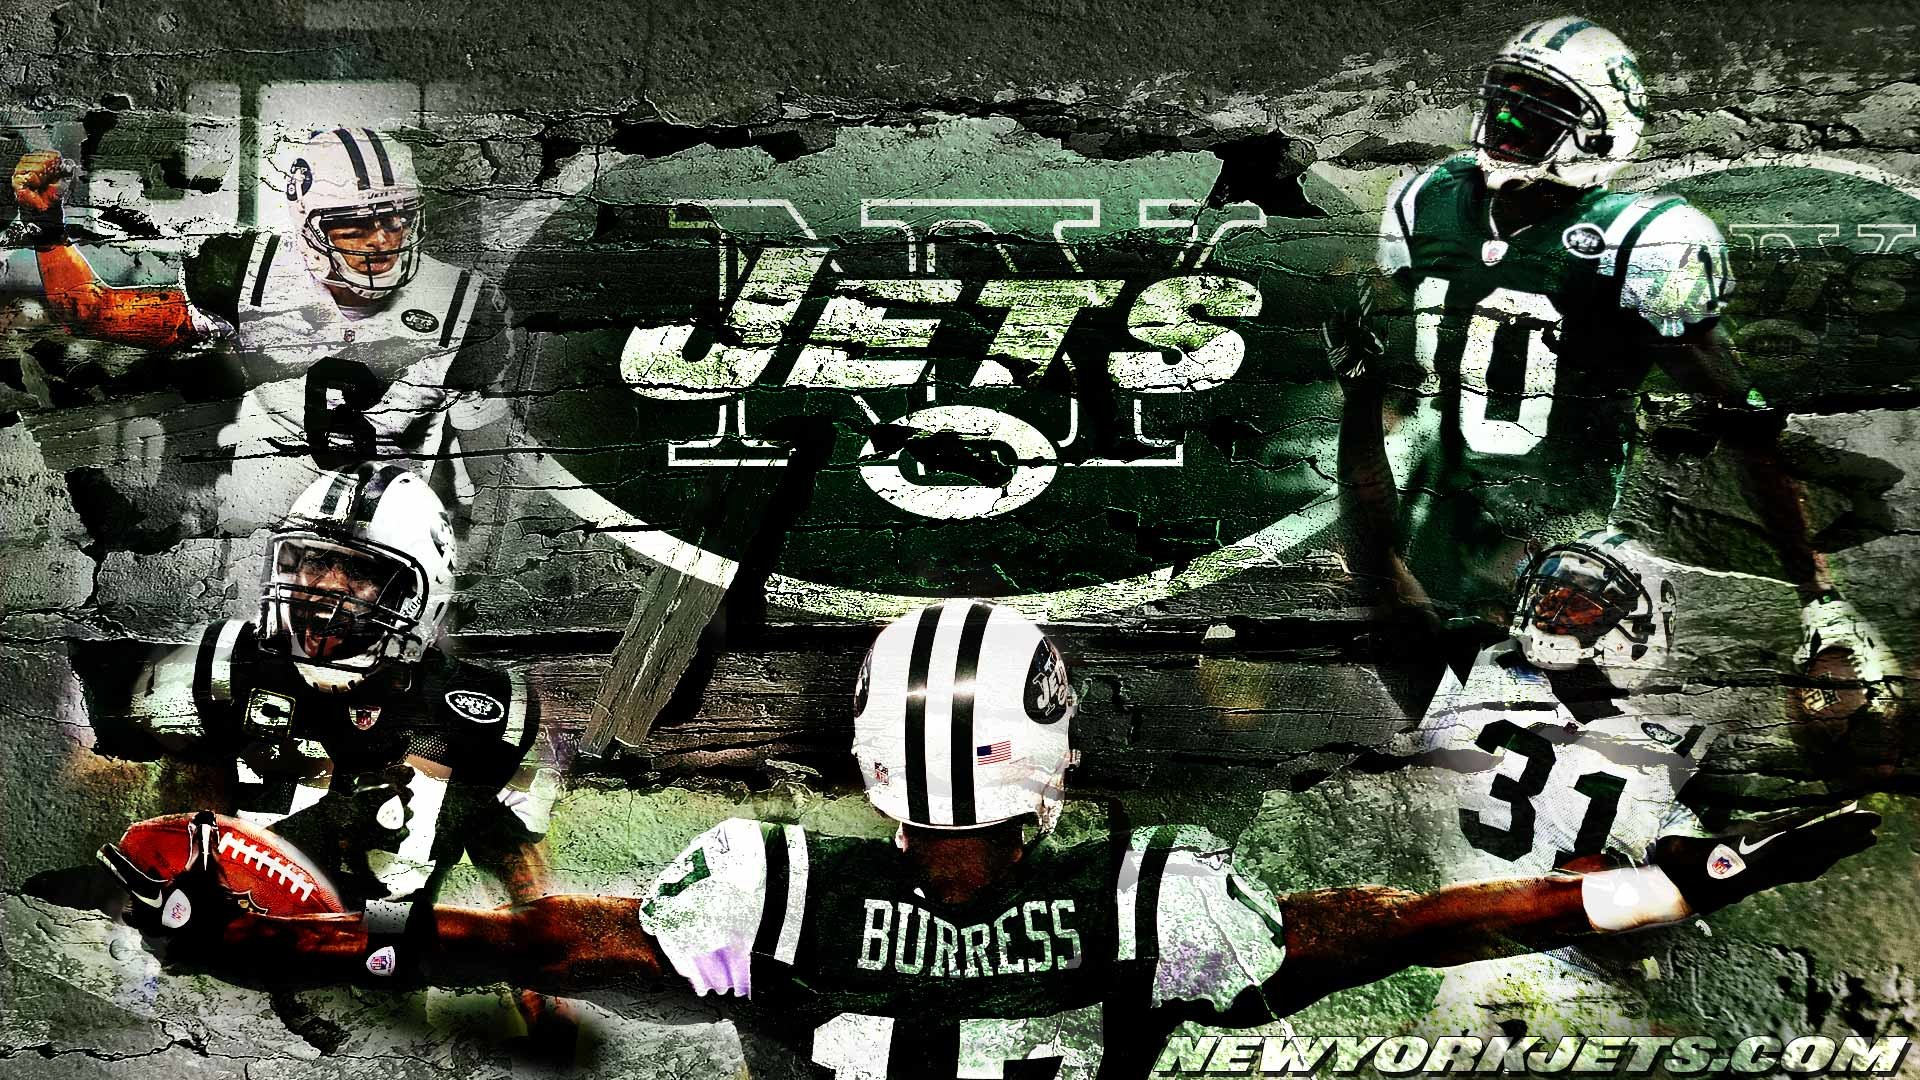 1920x1080 New York Jets | New York Jets wallpaper - 907994